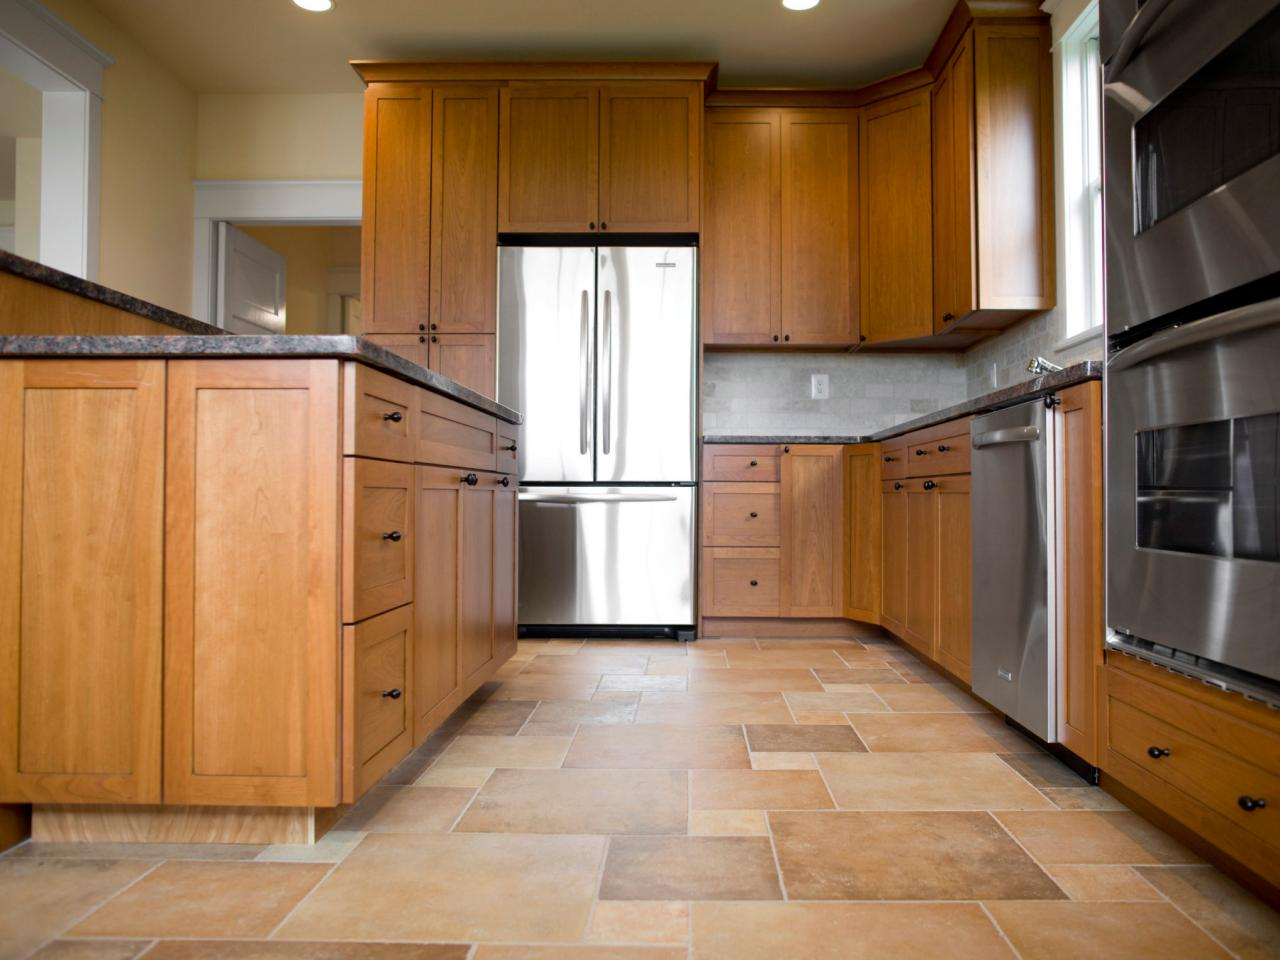 related to kitchen floors floor tile - Kitchen Tile Flooring Ideas